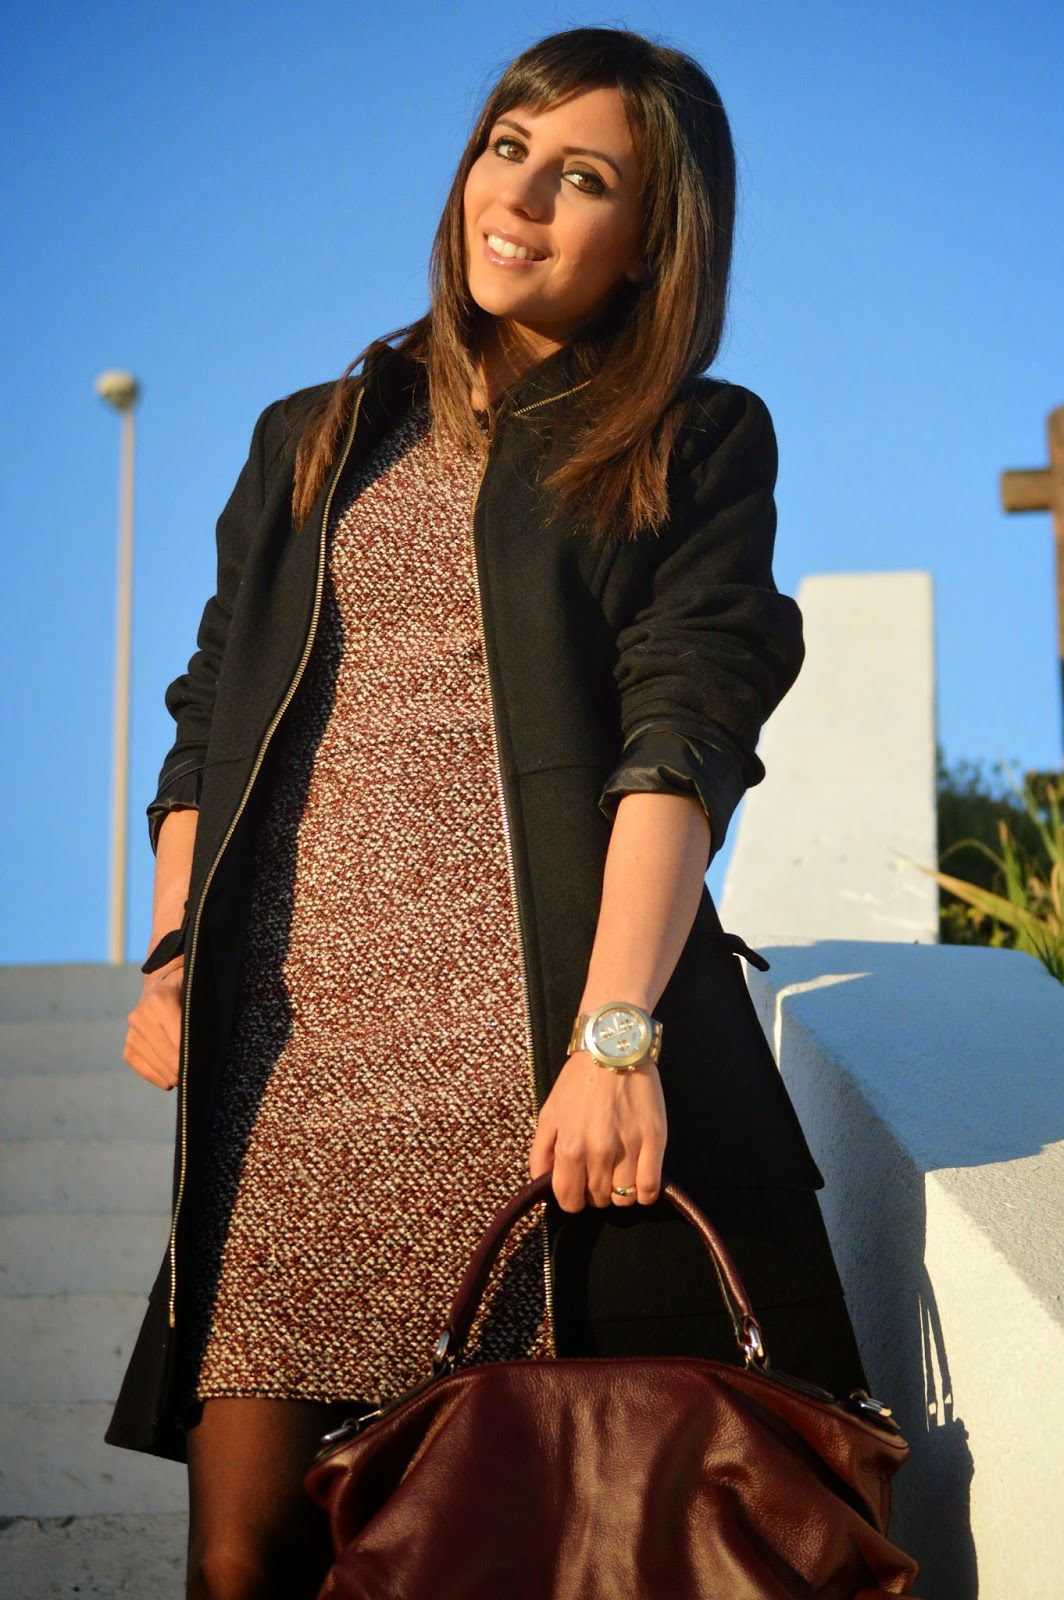 street style style ootd cristina style fashion blogger malagueña blogger malagueña outfit look chic casual tendencias moda mood inspirations purificacion garcia